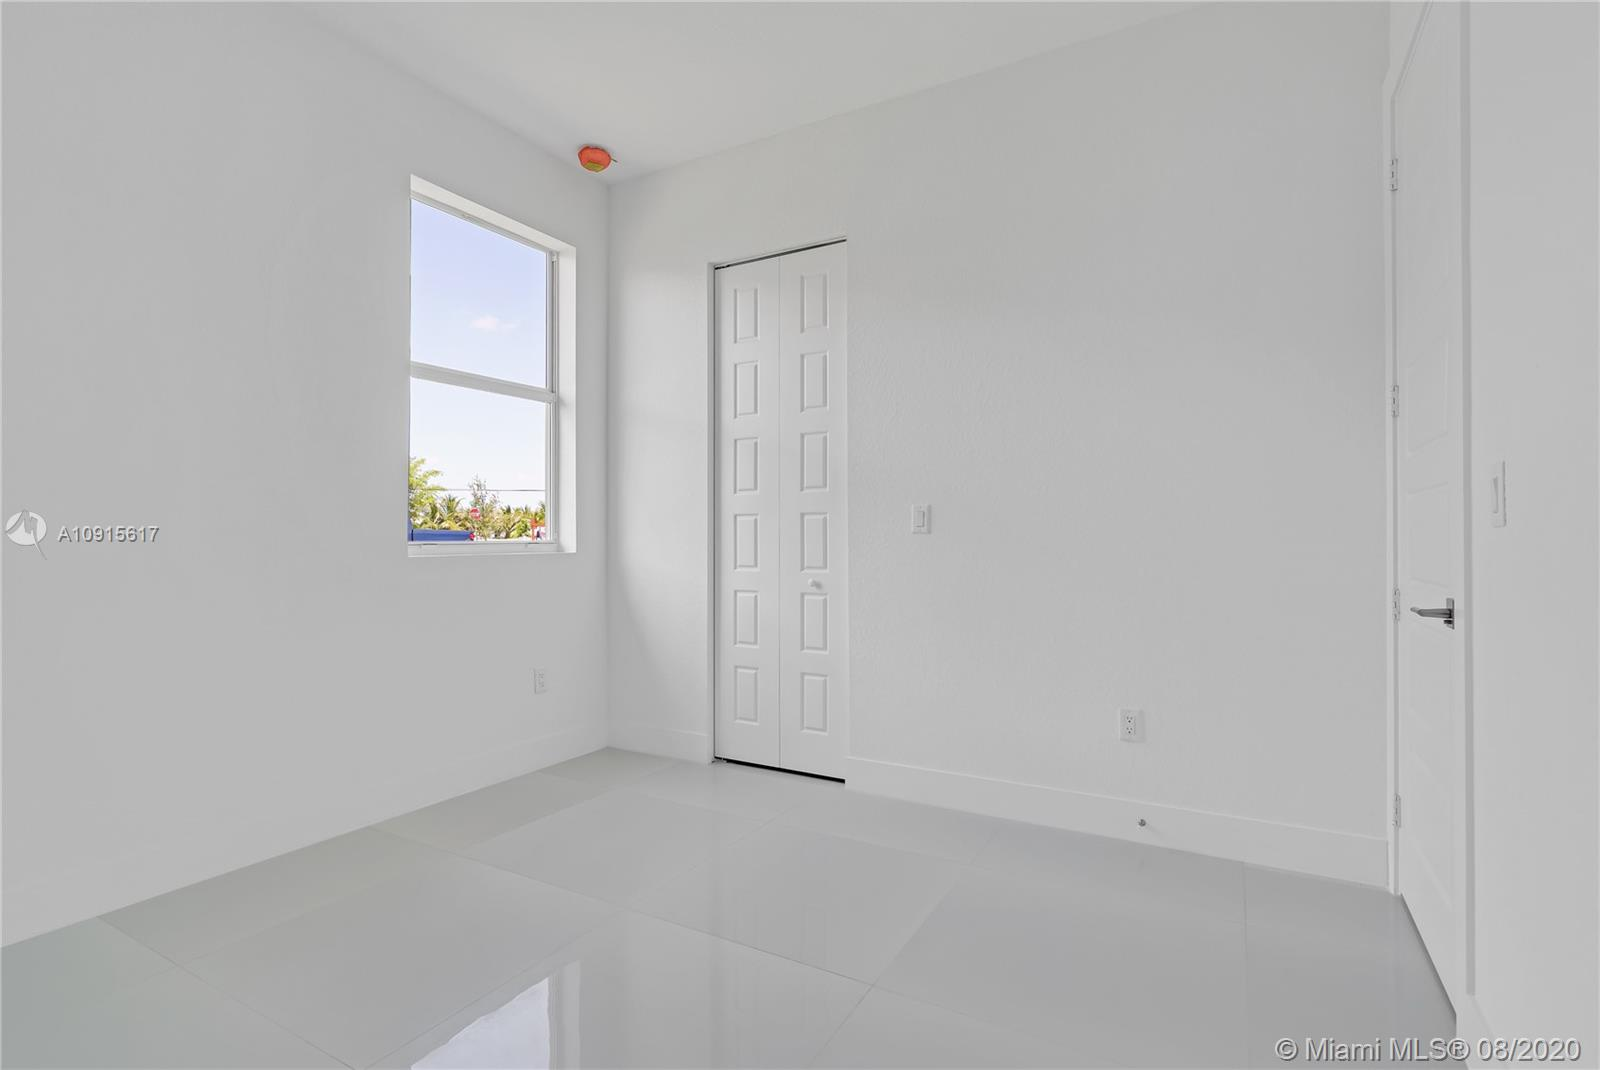 29146 SW 165 TER Property Photo